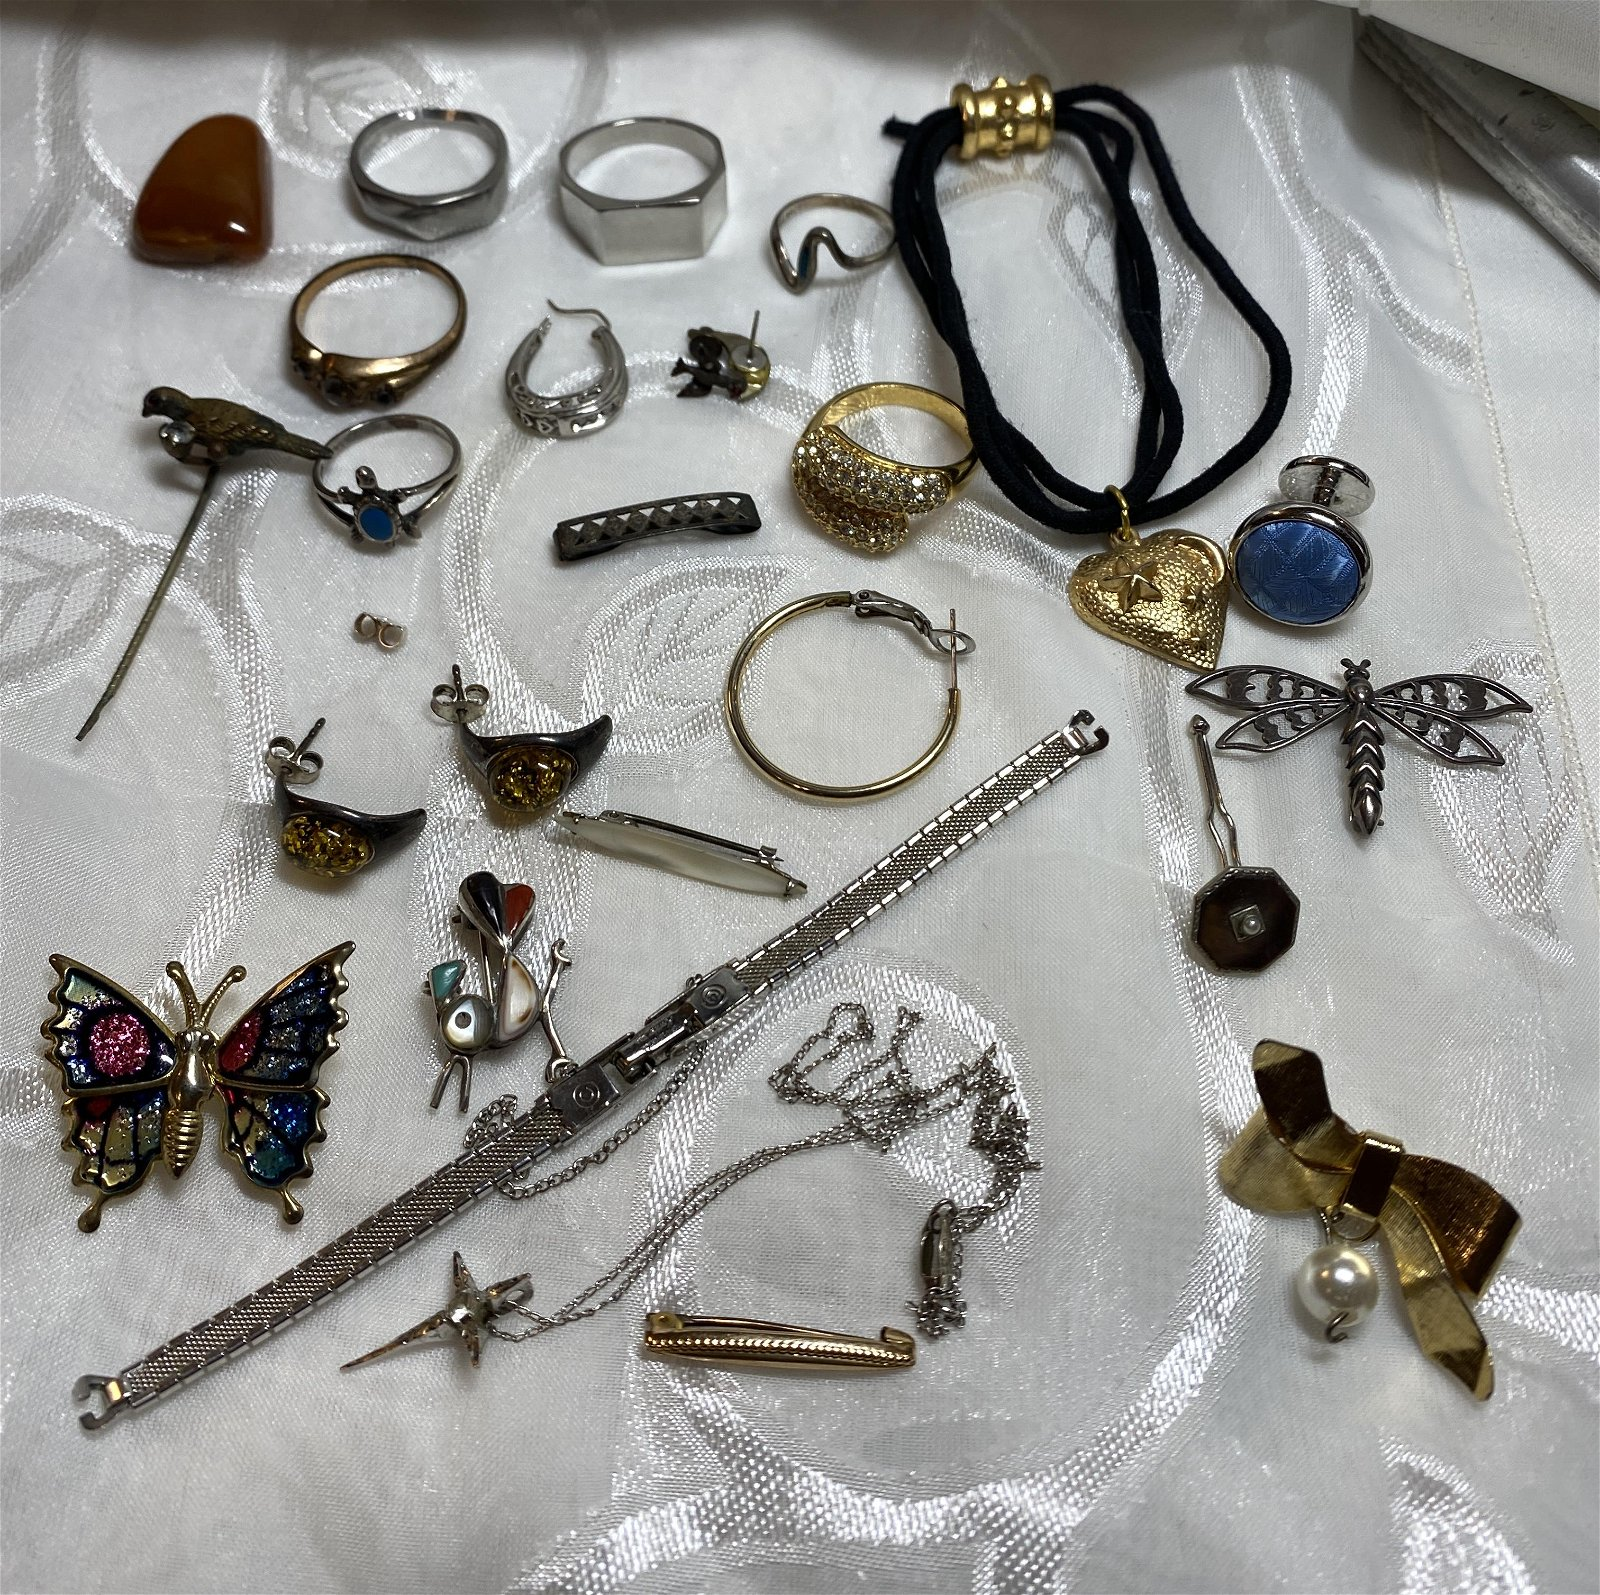 HIGH GRADE LOT OF SILVER/GOLD JEWELRY